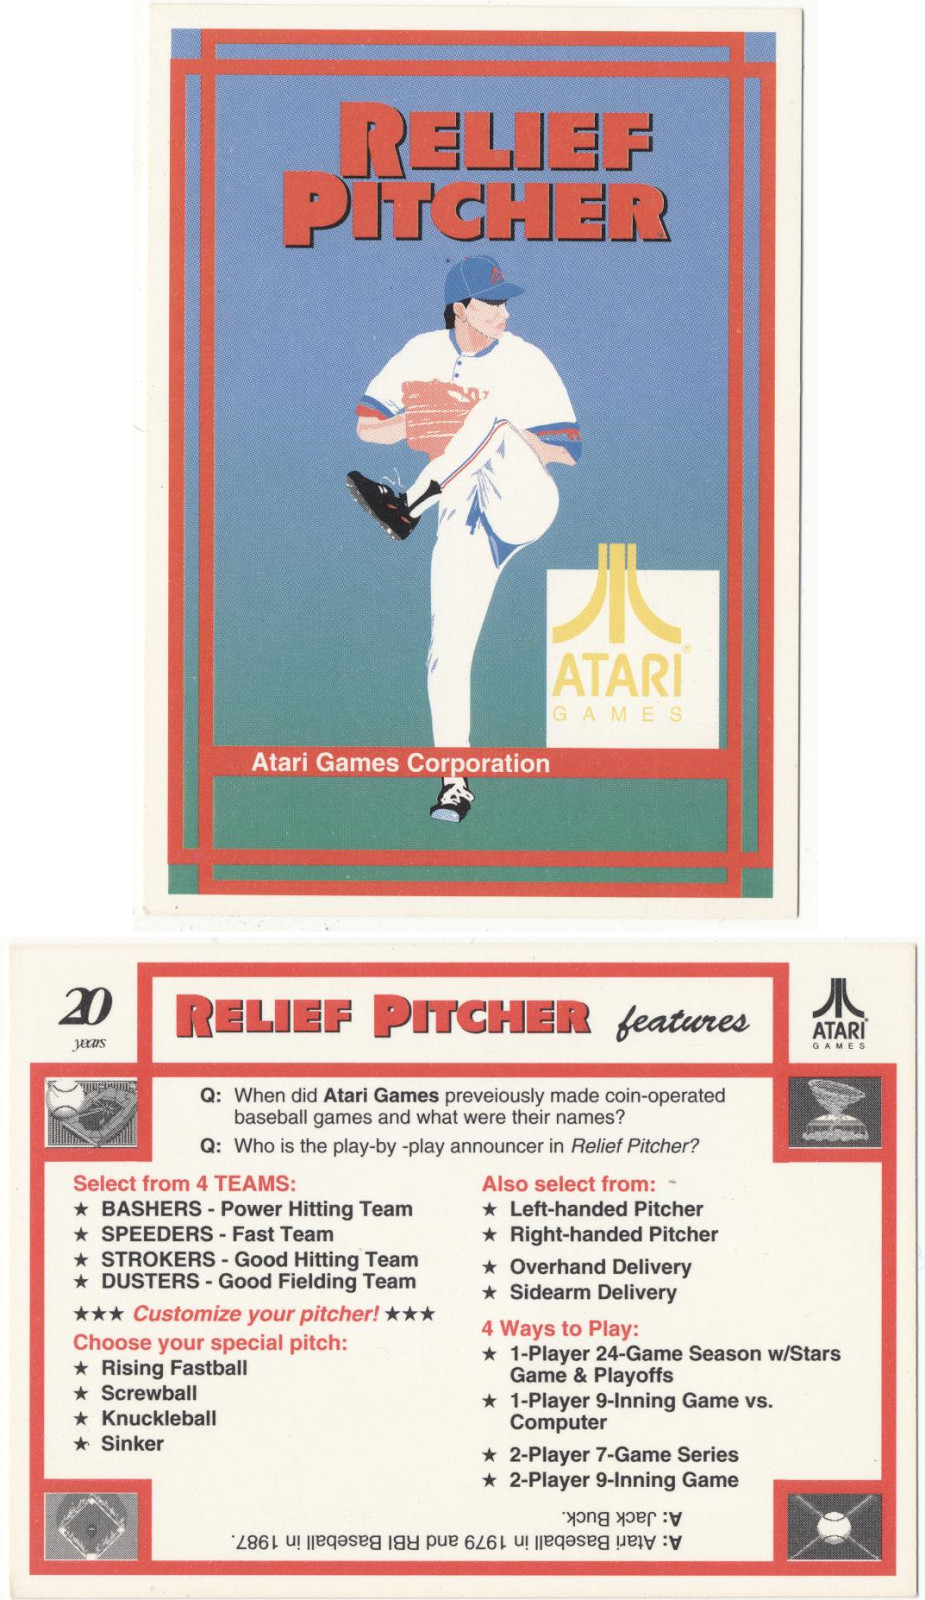 <em>A limited-edition baseball card (typos and all) produced by Atari to market thegame.</em>